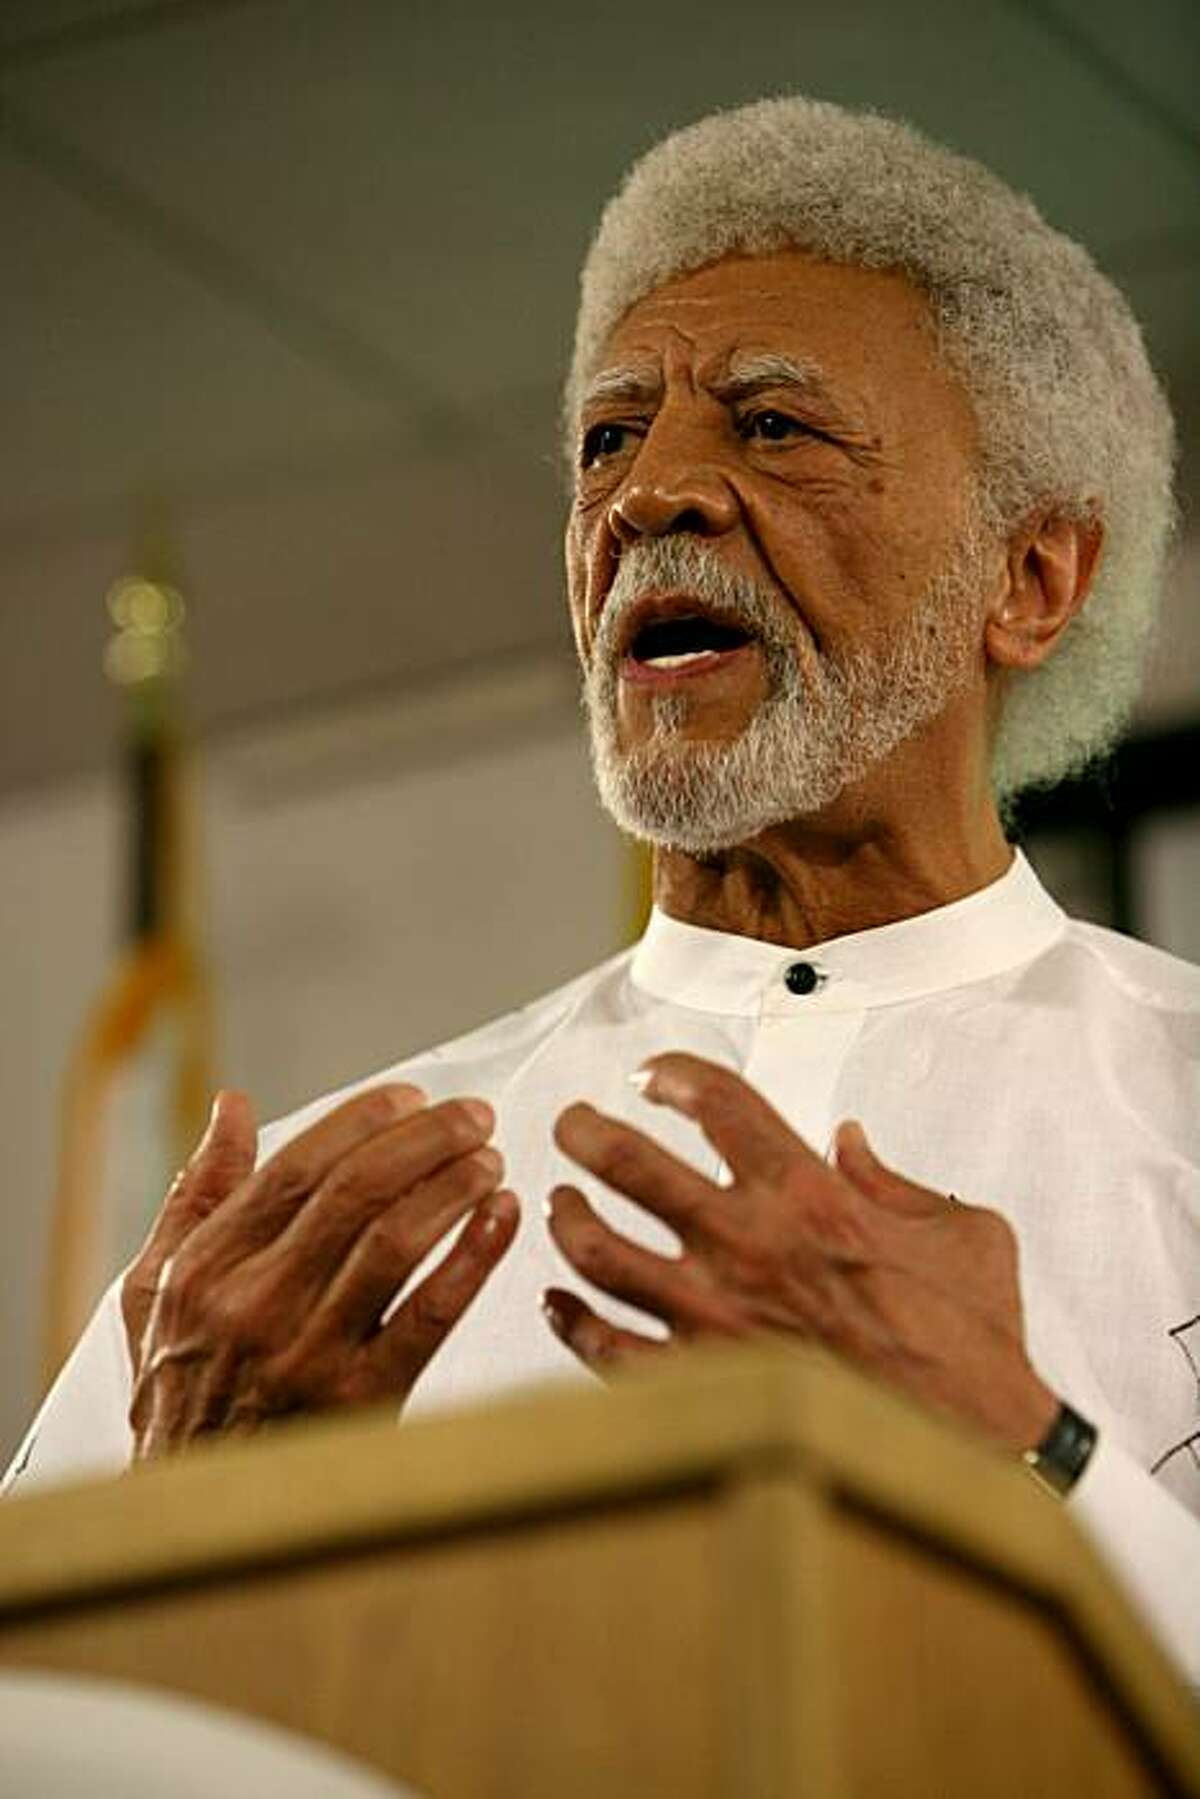 Mayor Dellums of Oakland addresses members of the press following the verdict of Johannes Mehserle at the Emergency Operations Center on Thursday, July 8, 2010 in Oakland, Calif.